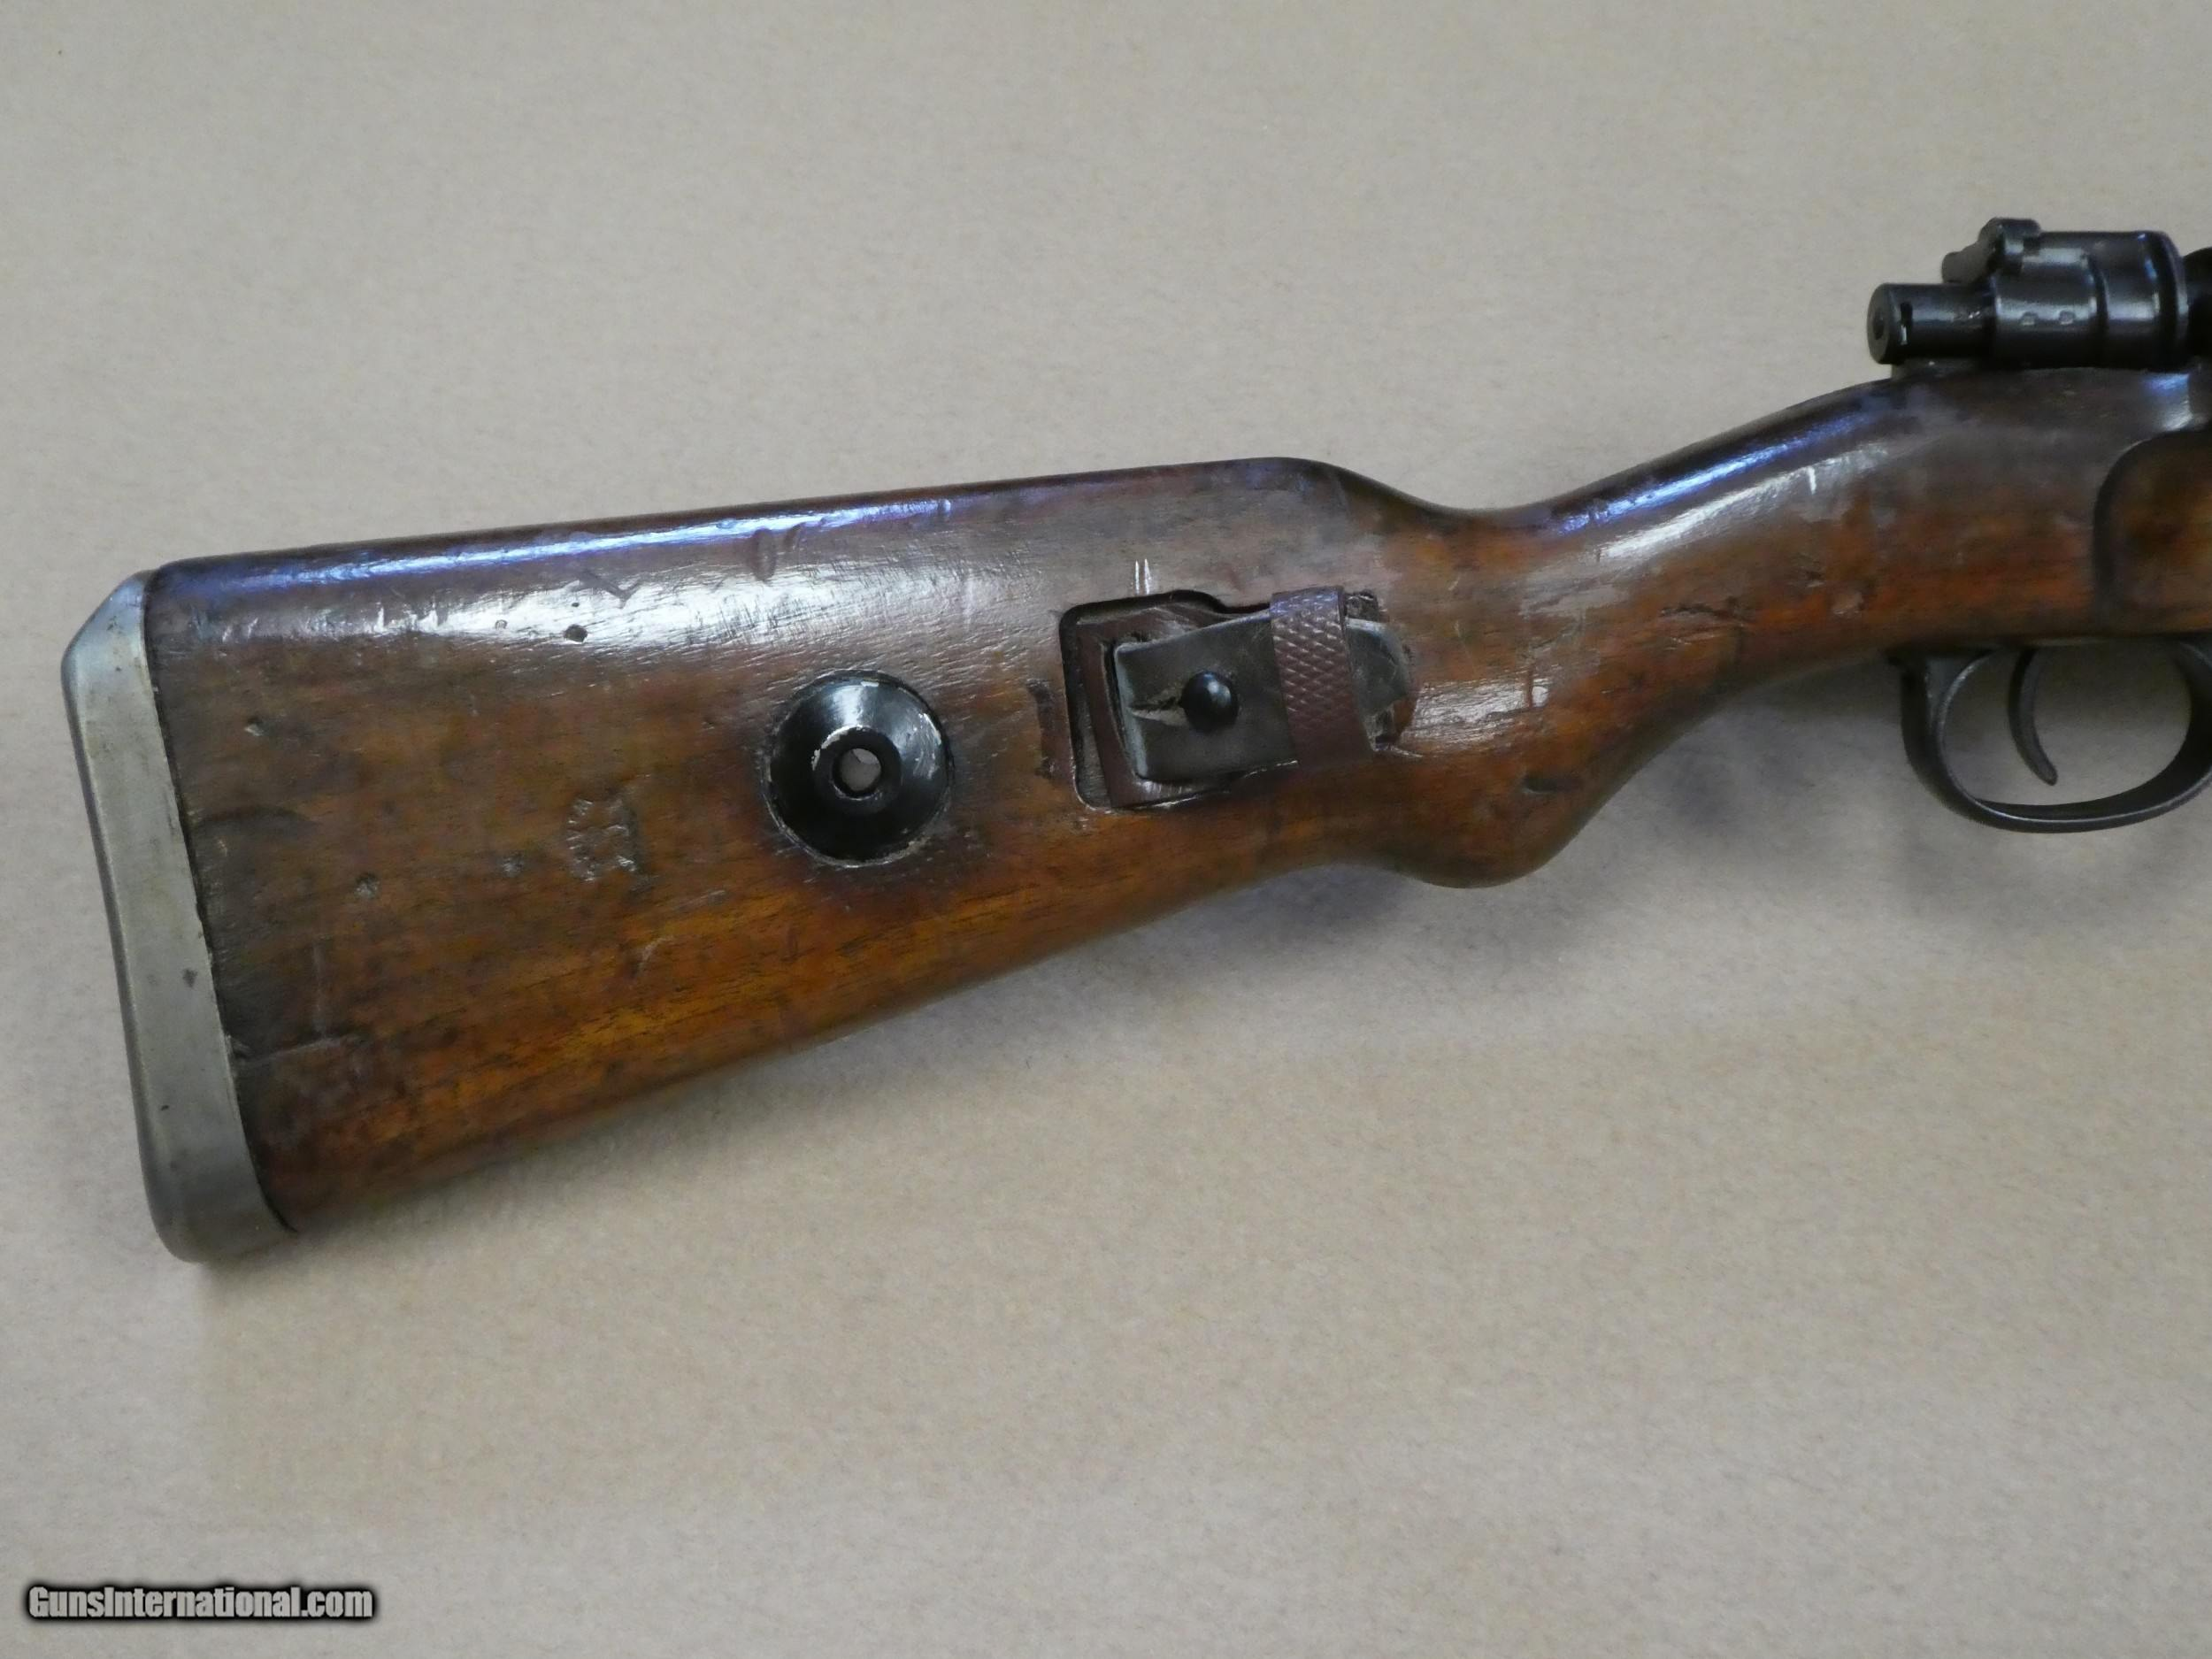 WW2 SS Contract Bnz43 K98 Rifle In 8mm Mauser Russian Capture